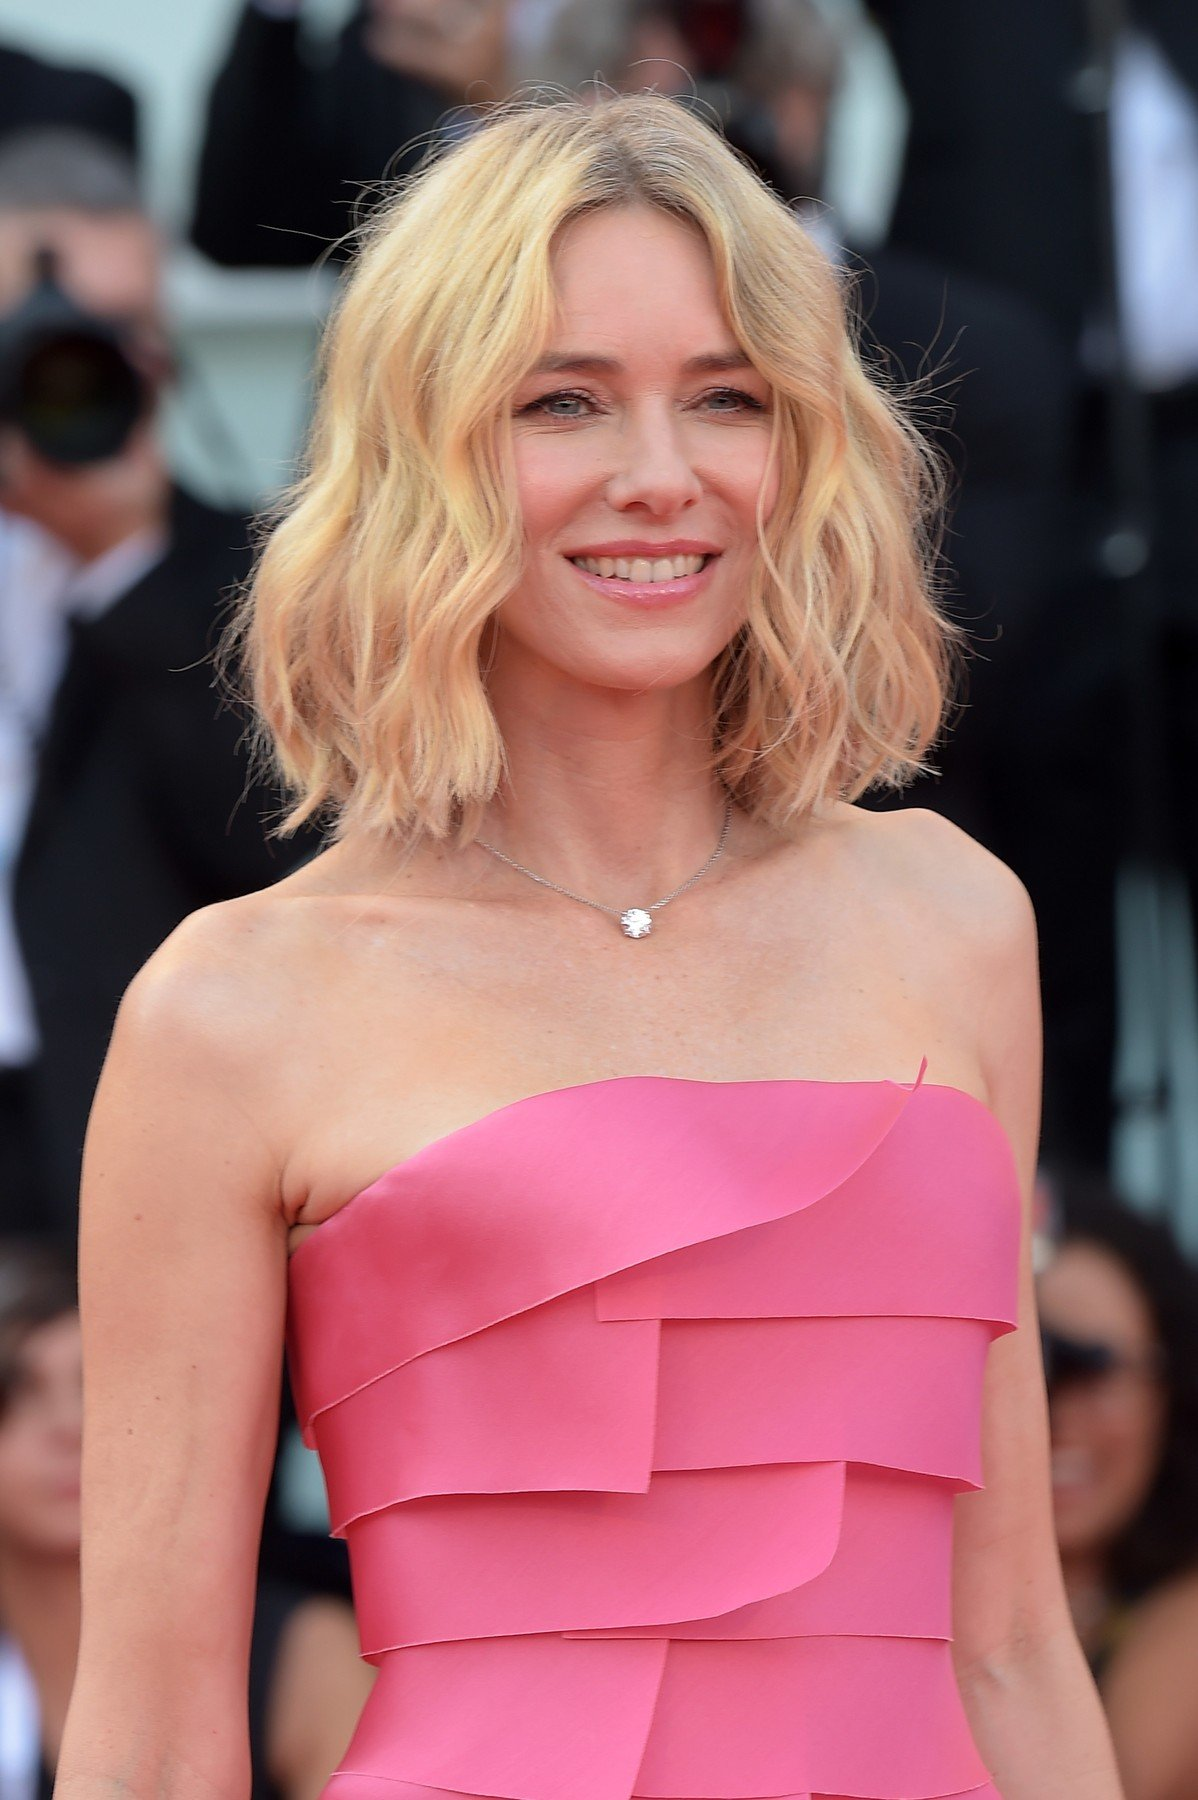 Naomi Watts 'First Man' premiere and Opening Ceremony, Arrivals, 75th Venice International Film Festival, Italy - 29 Aug 2018, Image: 384547135, License: Rights-managed, Restrictions: , Model Release: no, Credit line: Profimedia, TEMP Rex Features